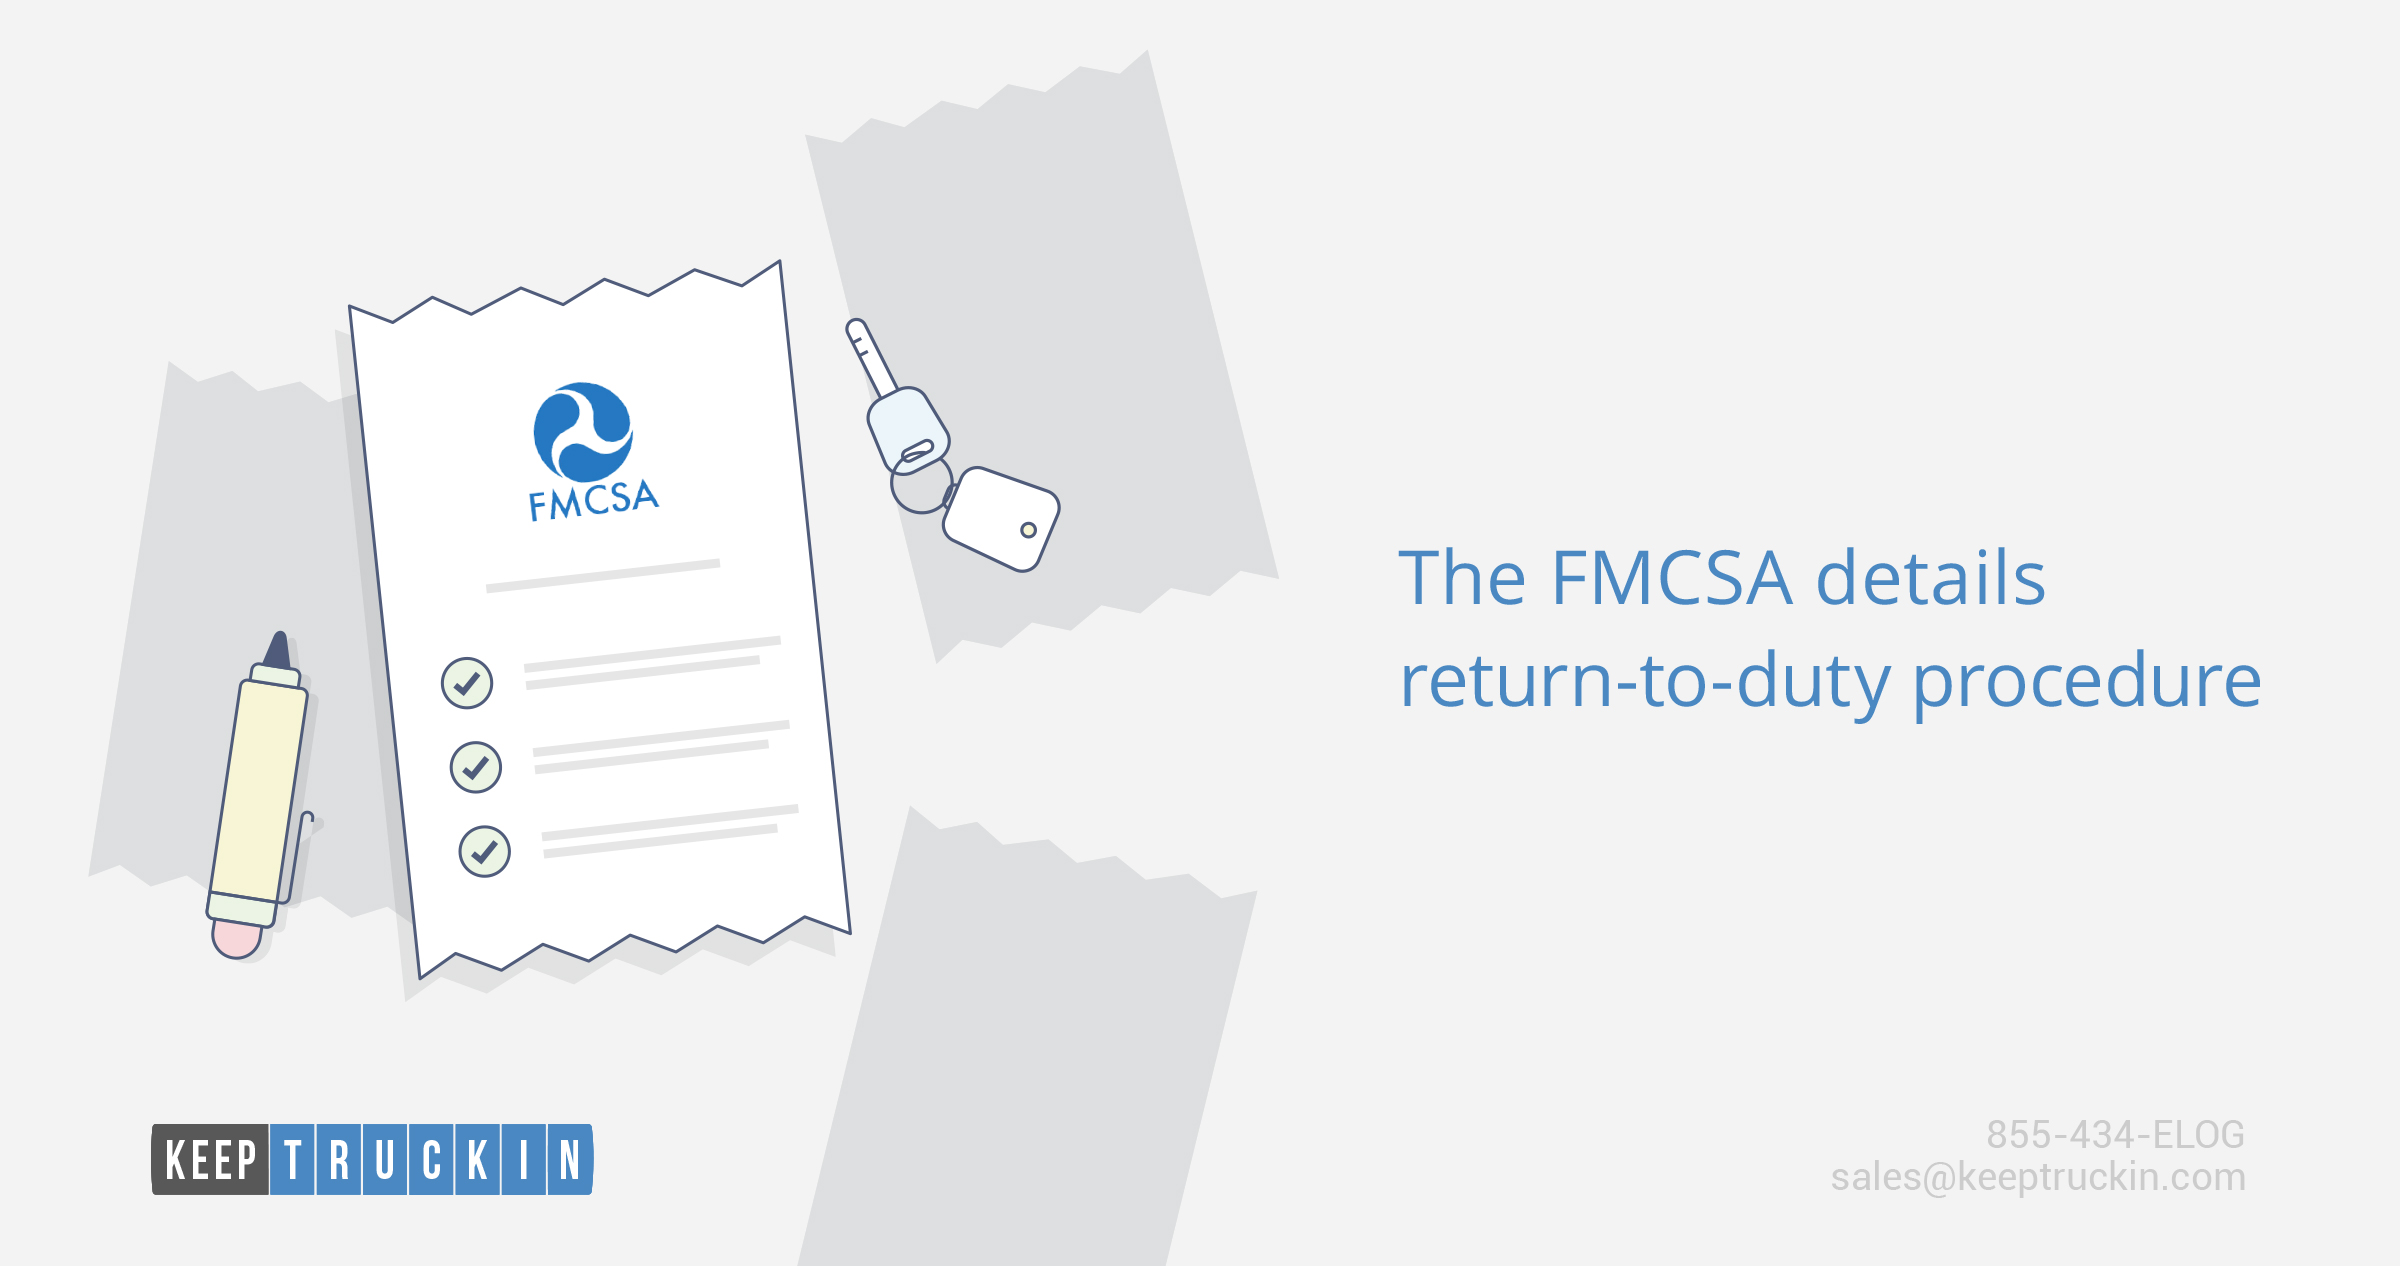 The FMCSA details return-to-duty procedure